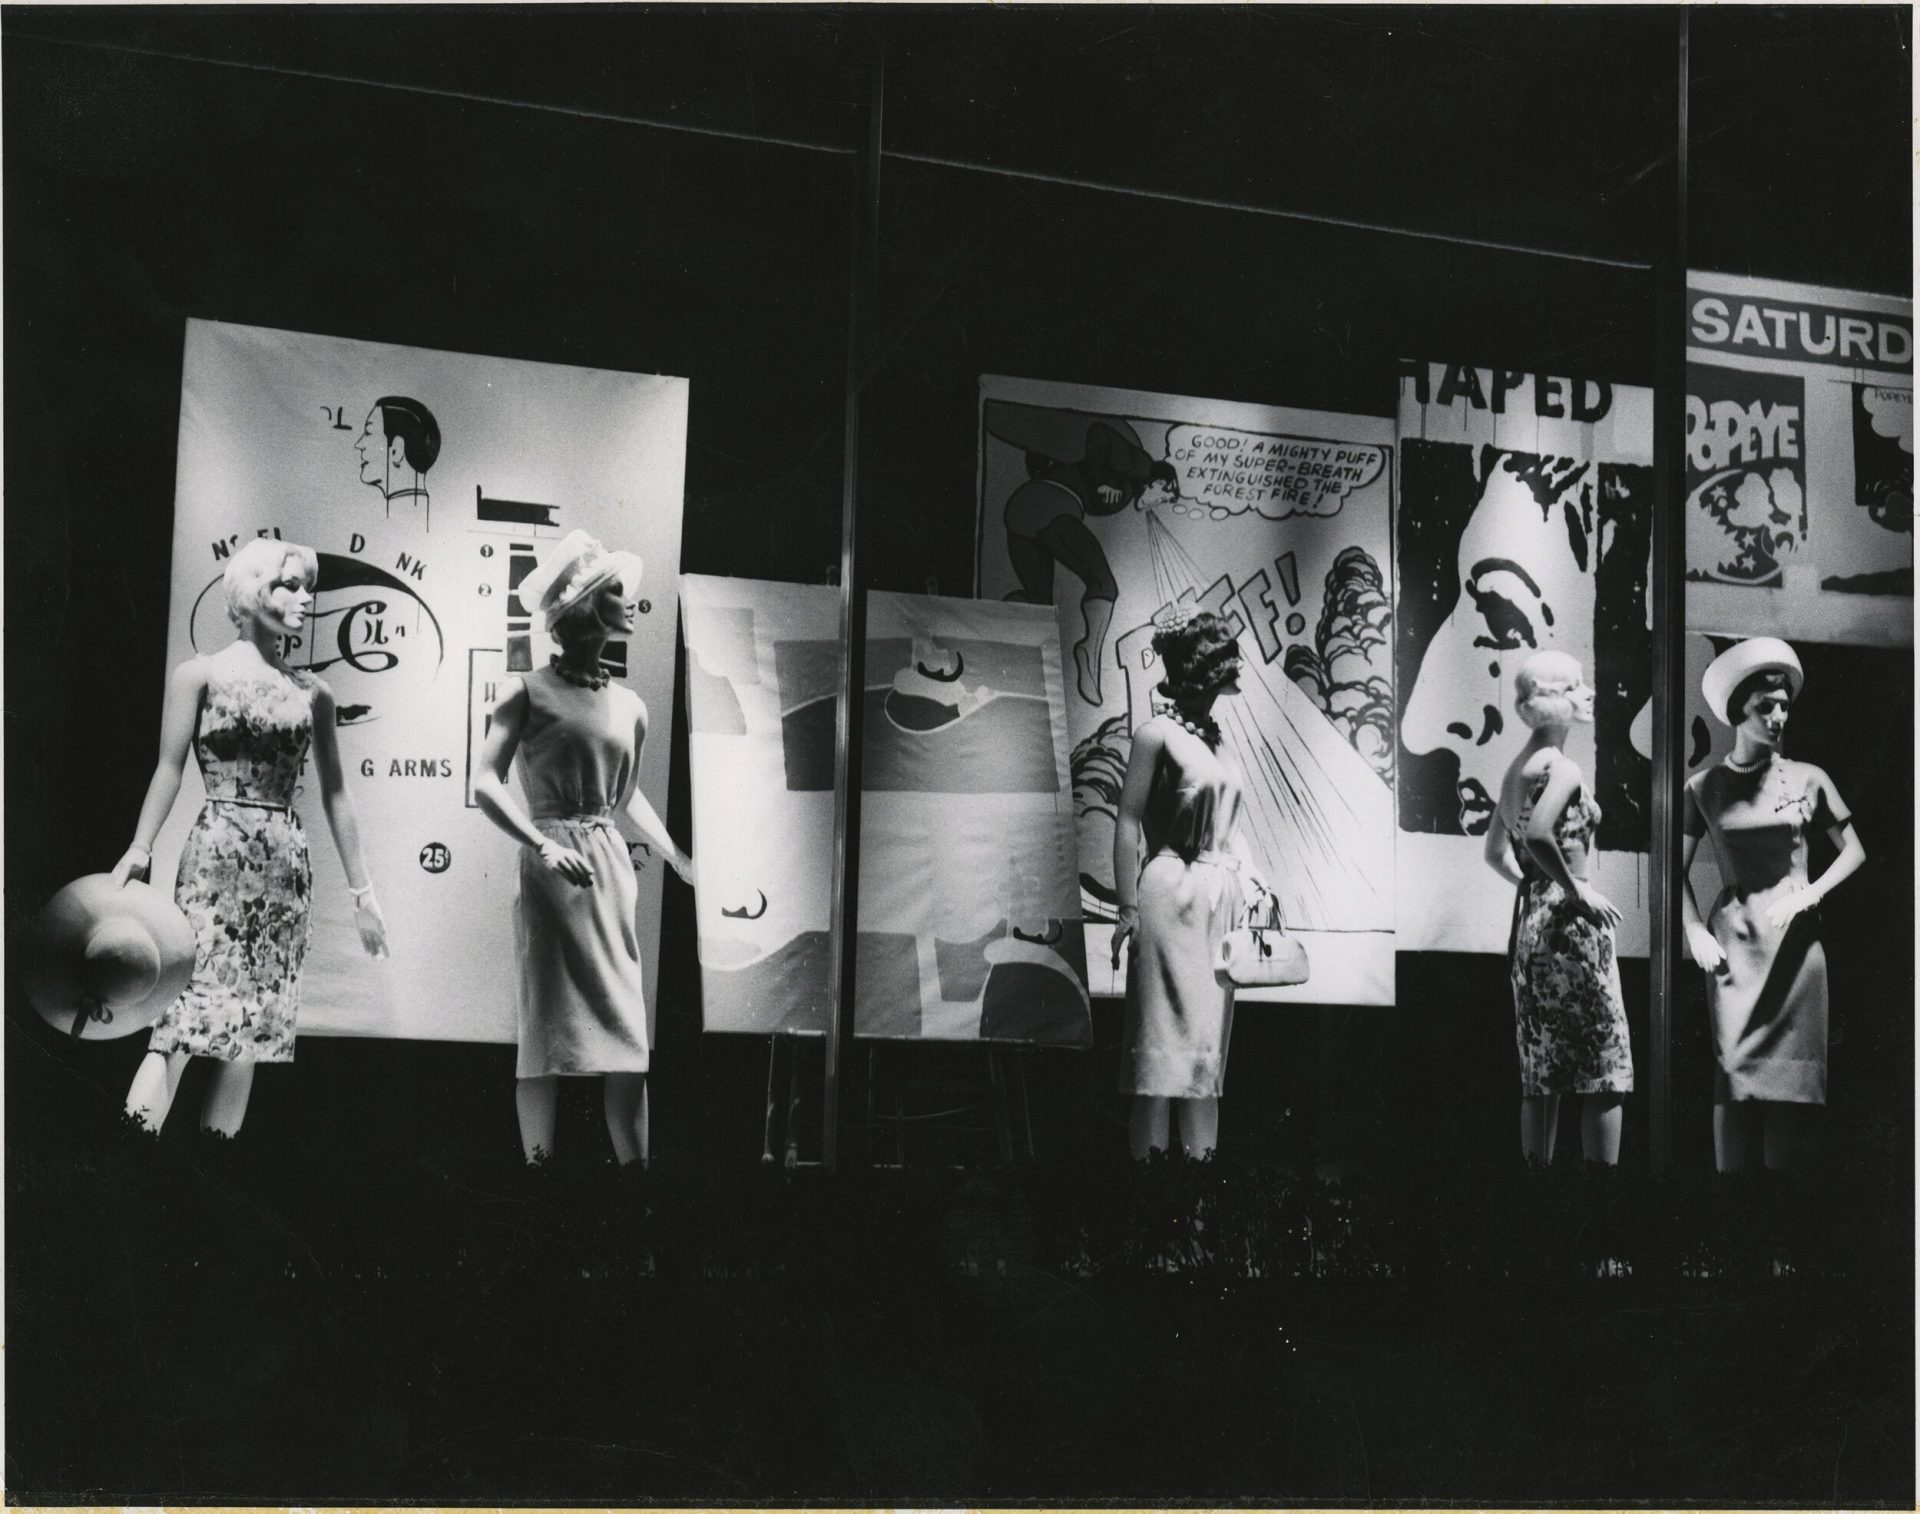 Bonwit Teller display window in Understanding Andy Warhol as a collector for A Collected Man